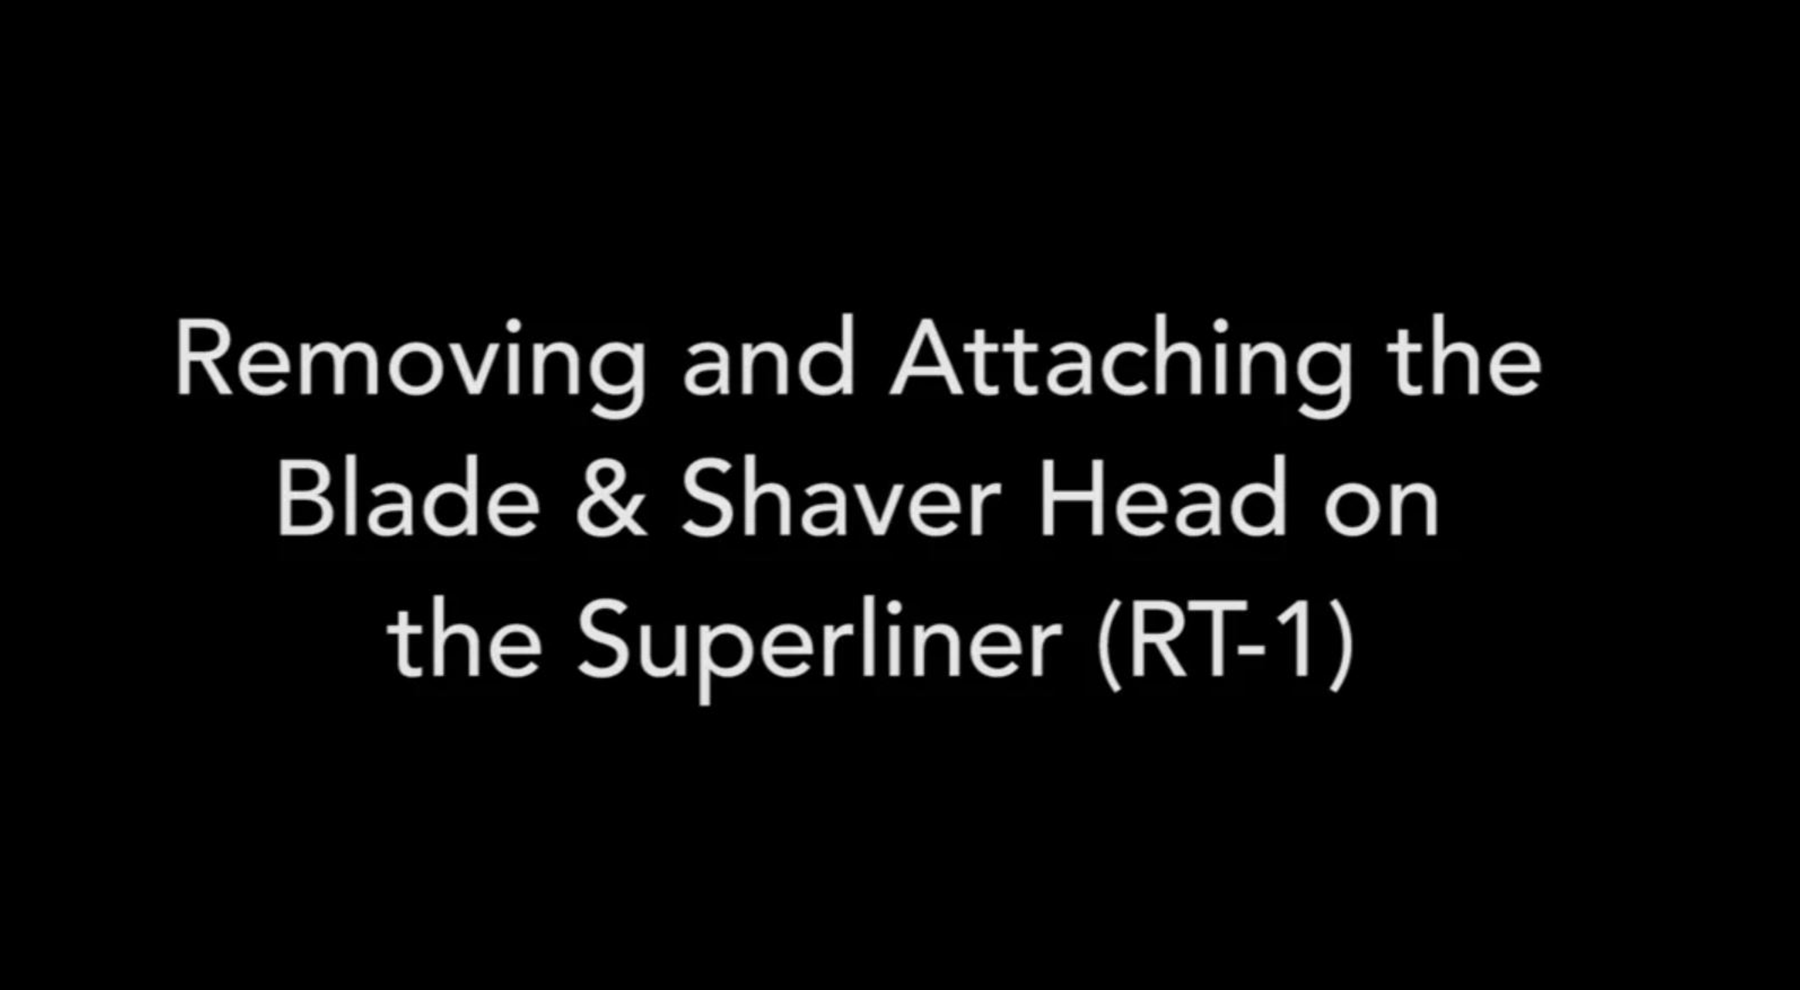 Remove & Attach the Superliner Blade & Shaver Head